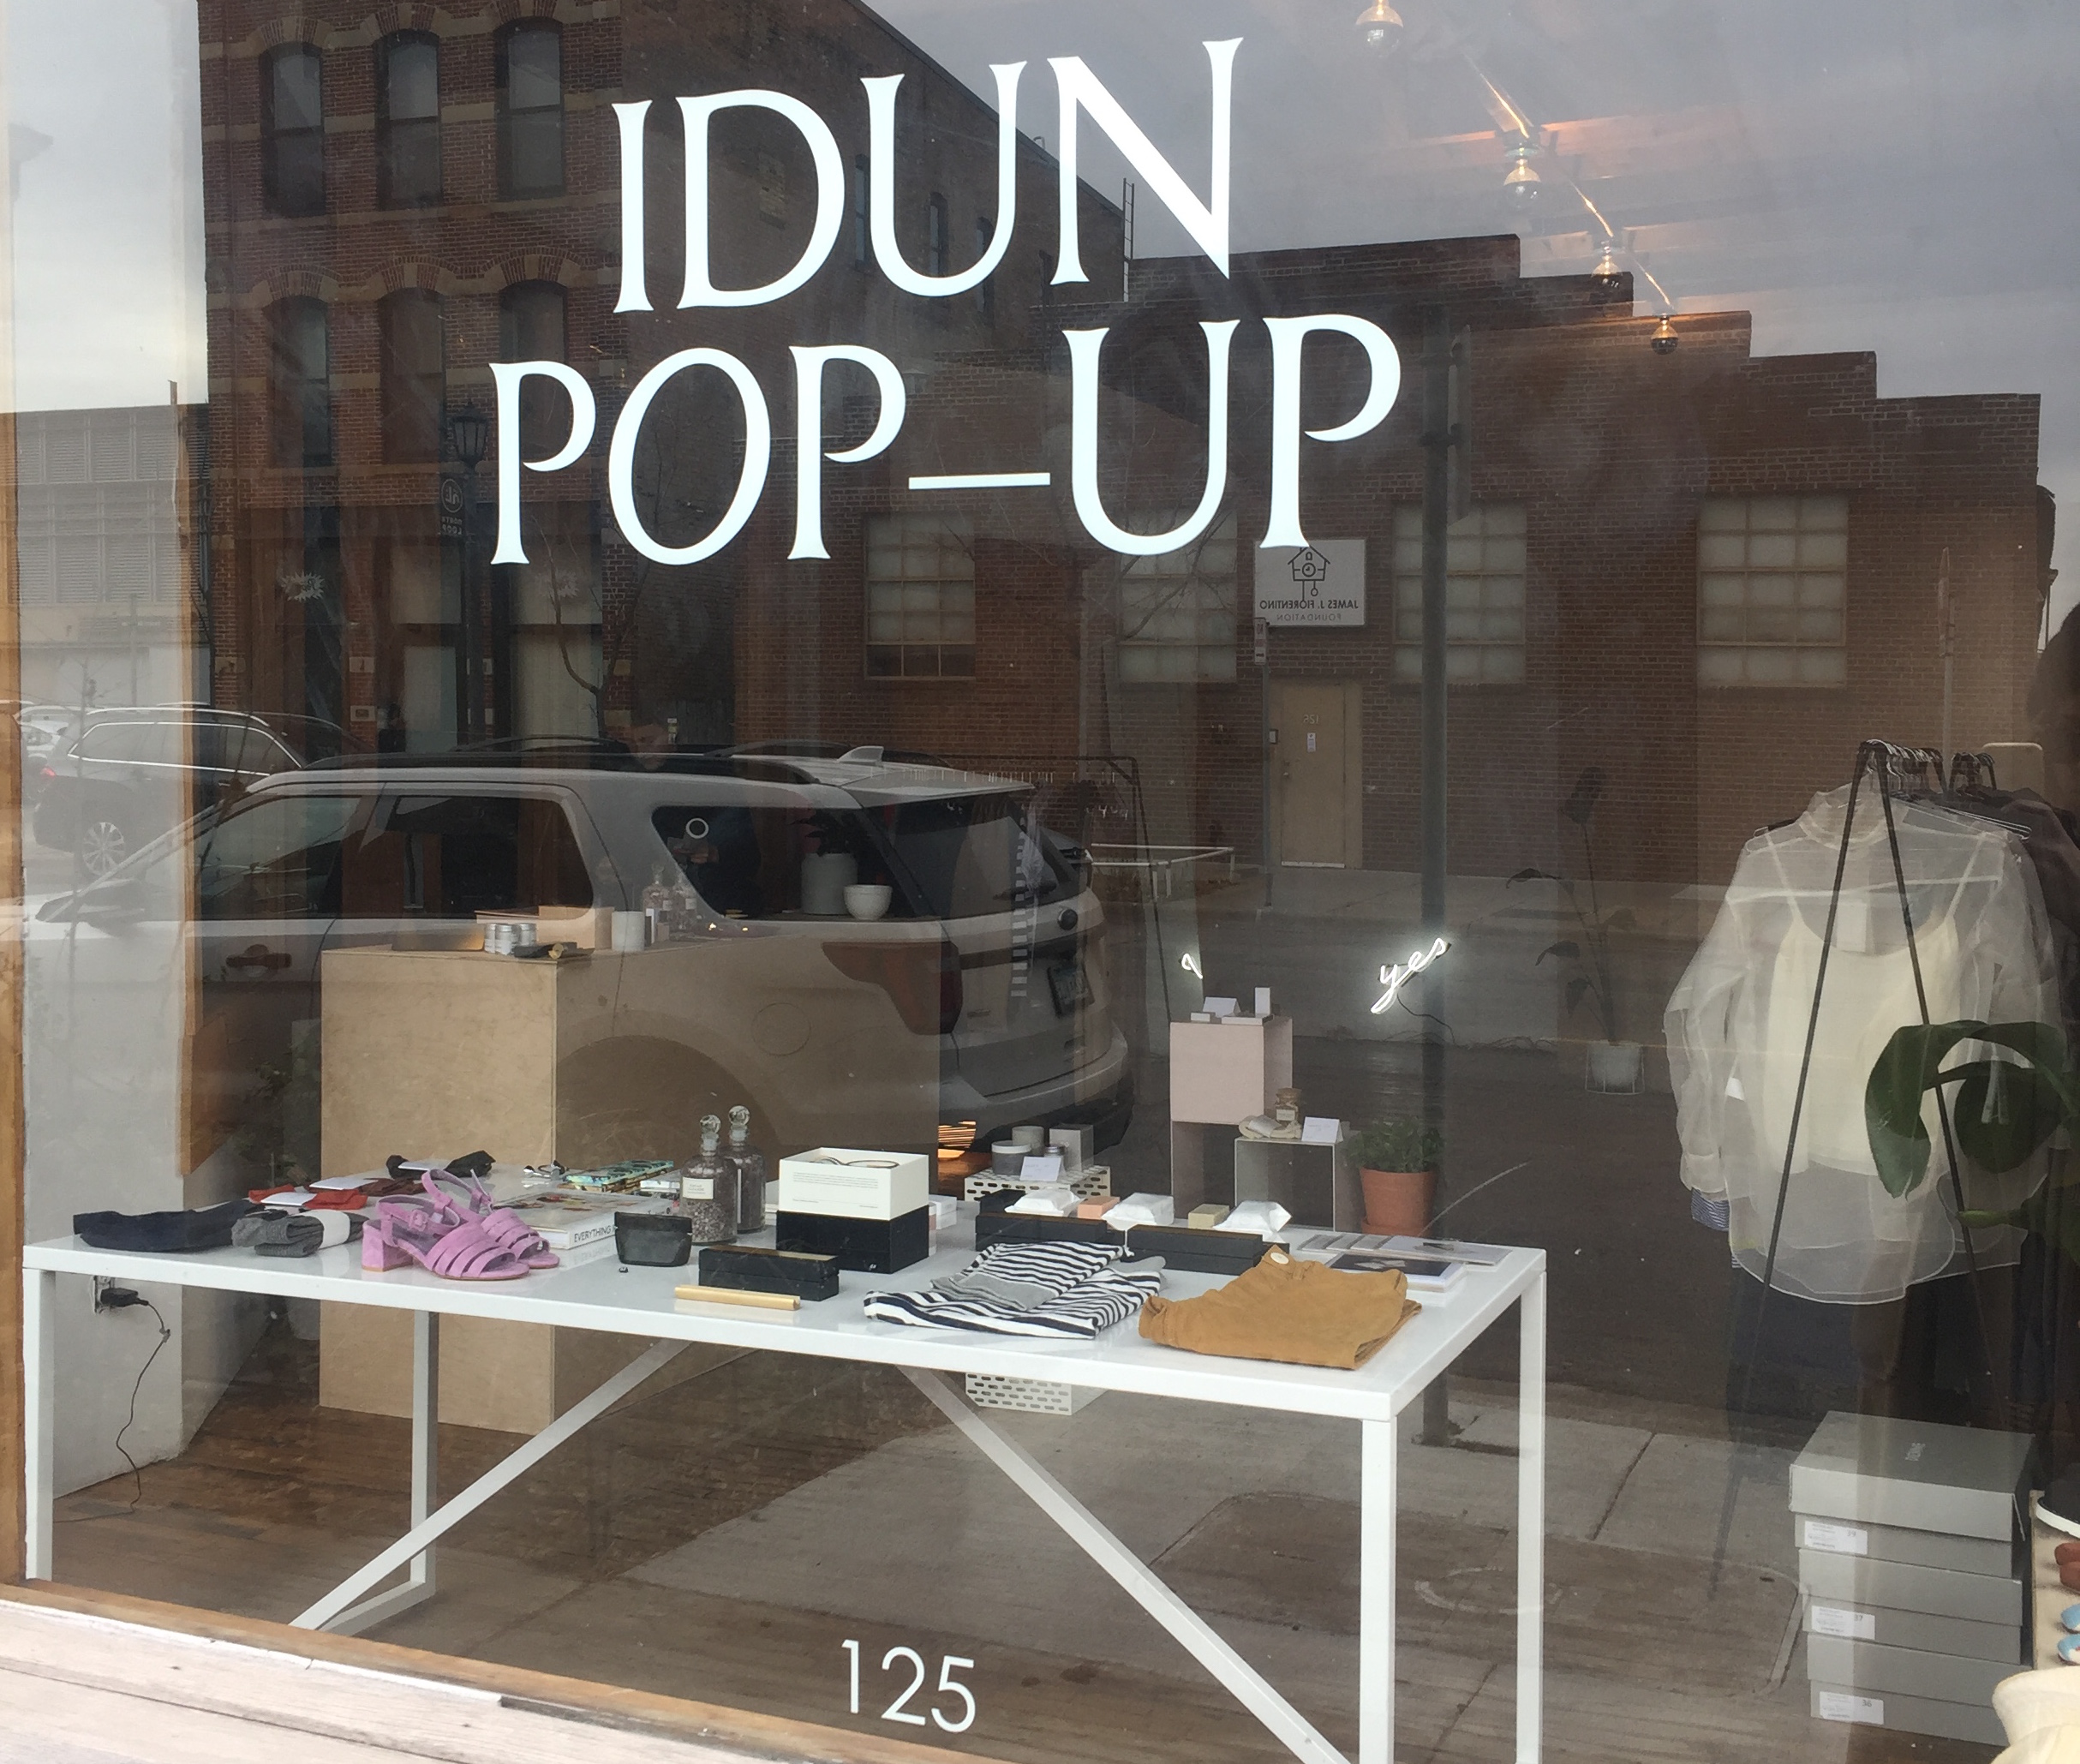 Idun Pop-up